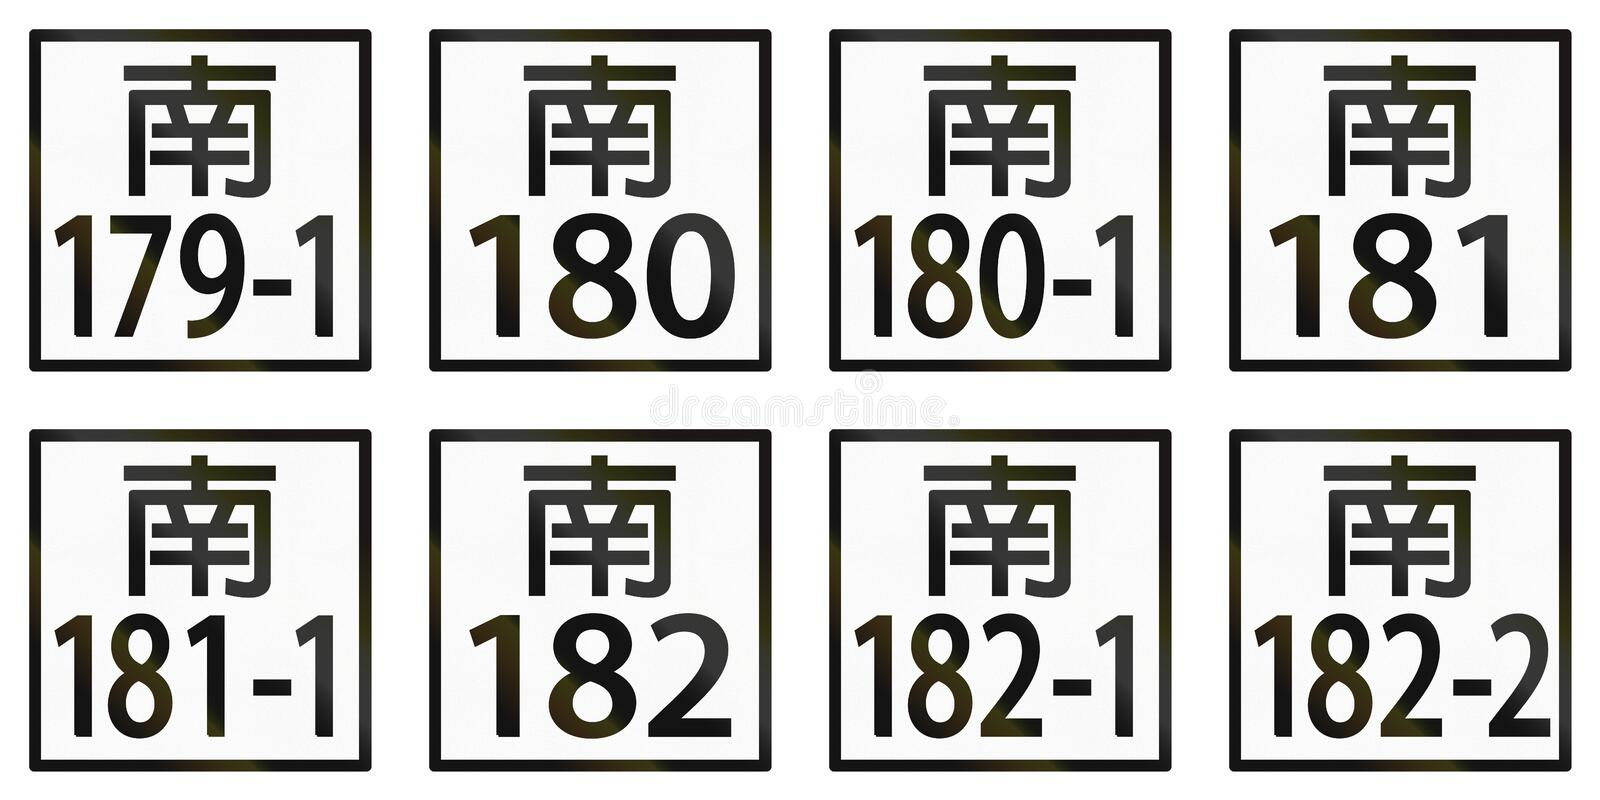 Collection of local township highway signs in Taiwan stock image